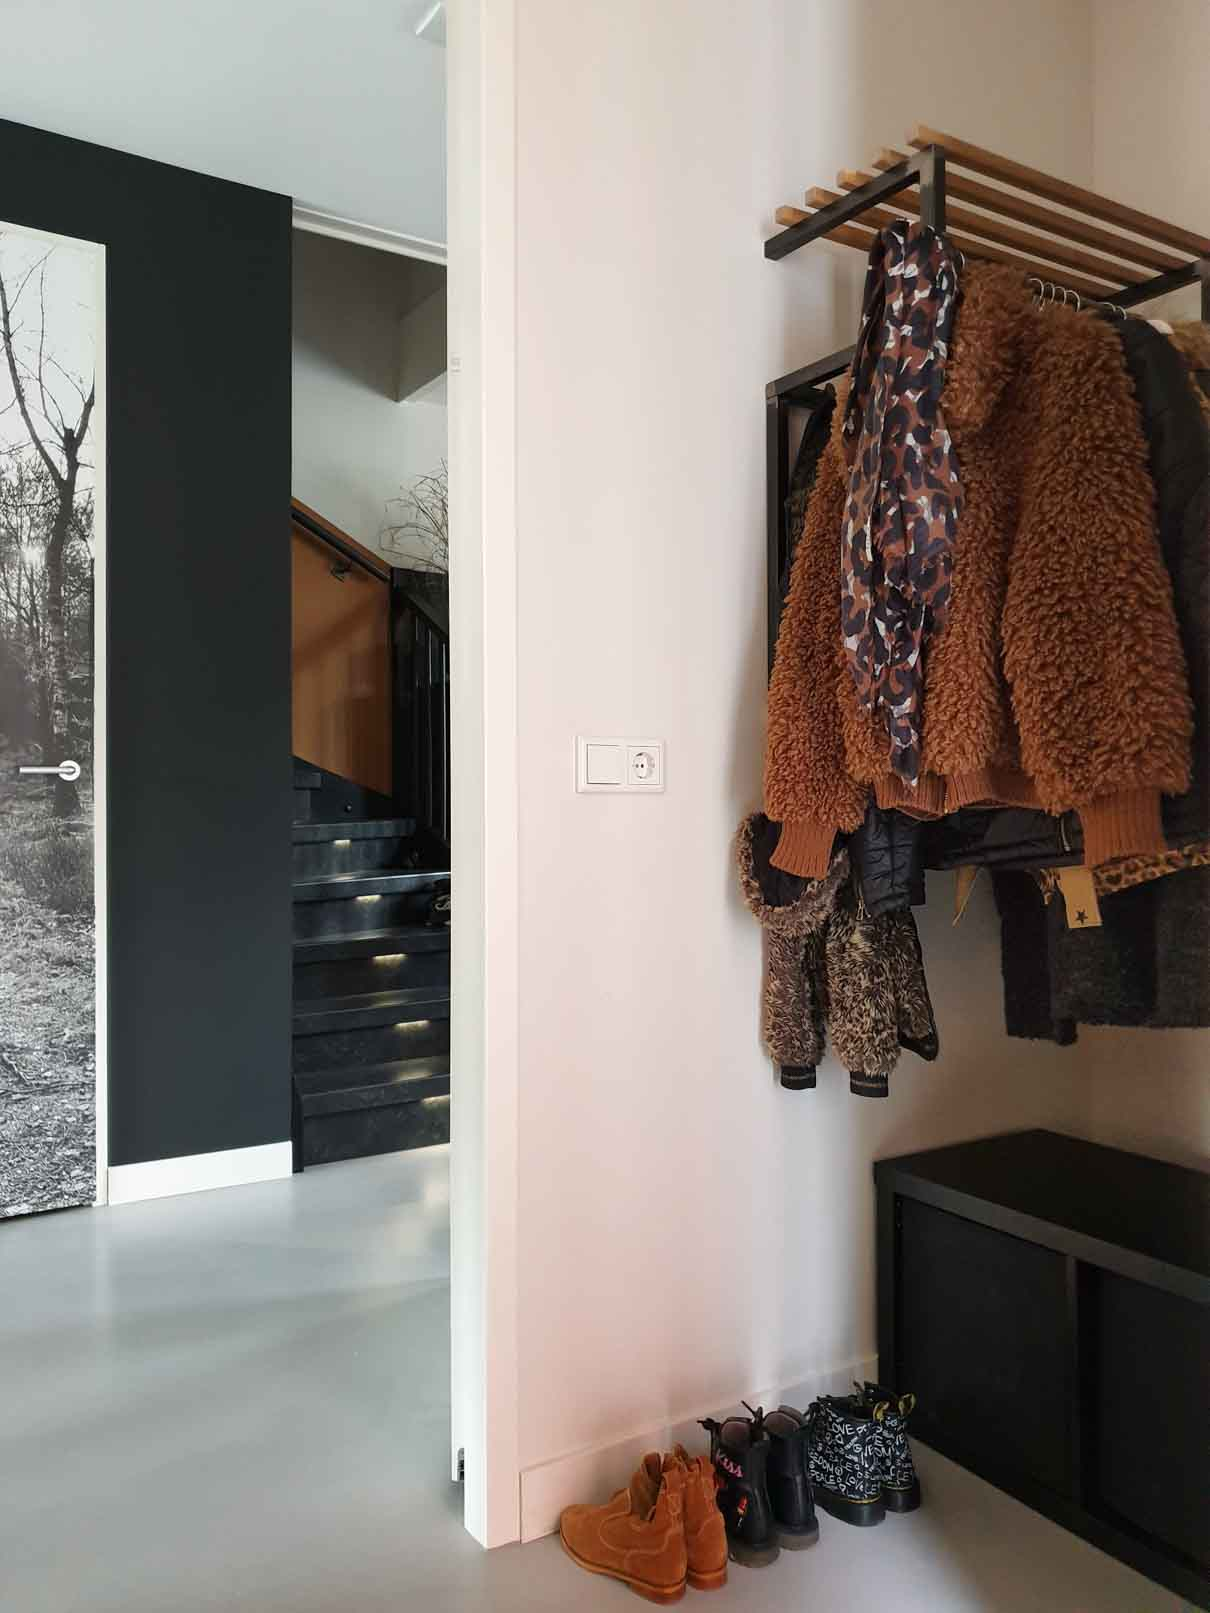 Hallway with white walls, black accents, and wooden and black metal coatrack